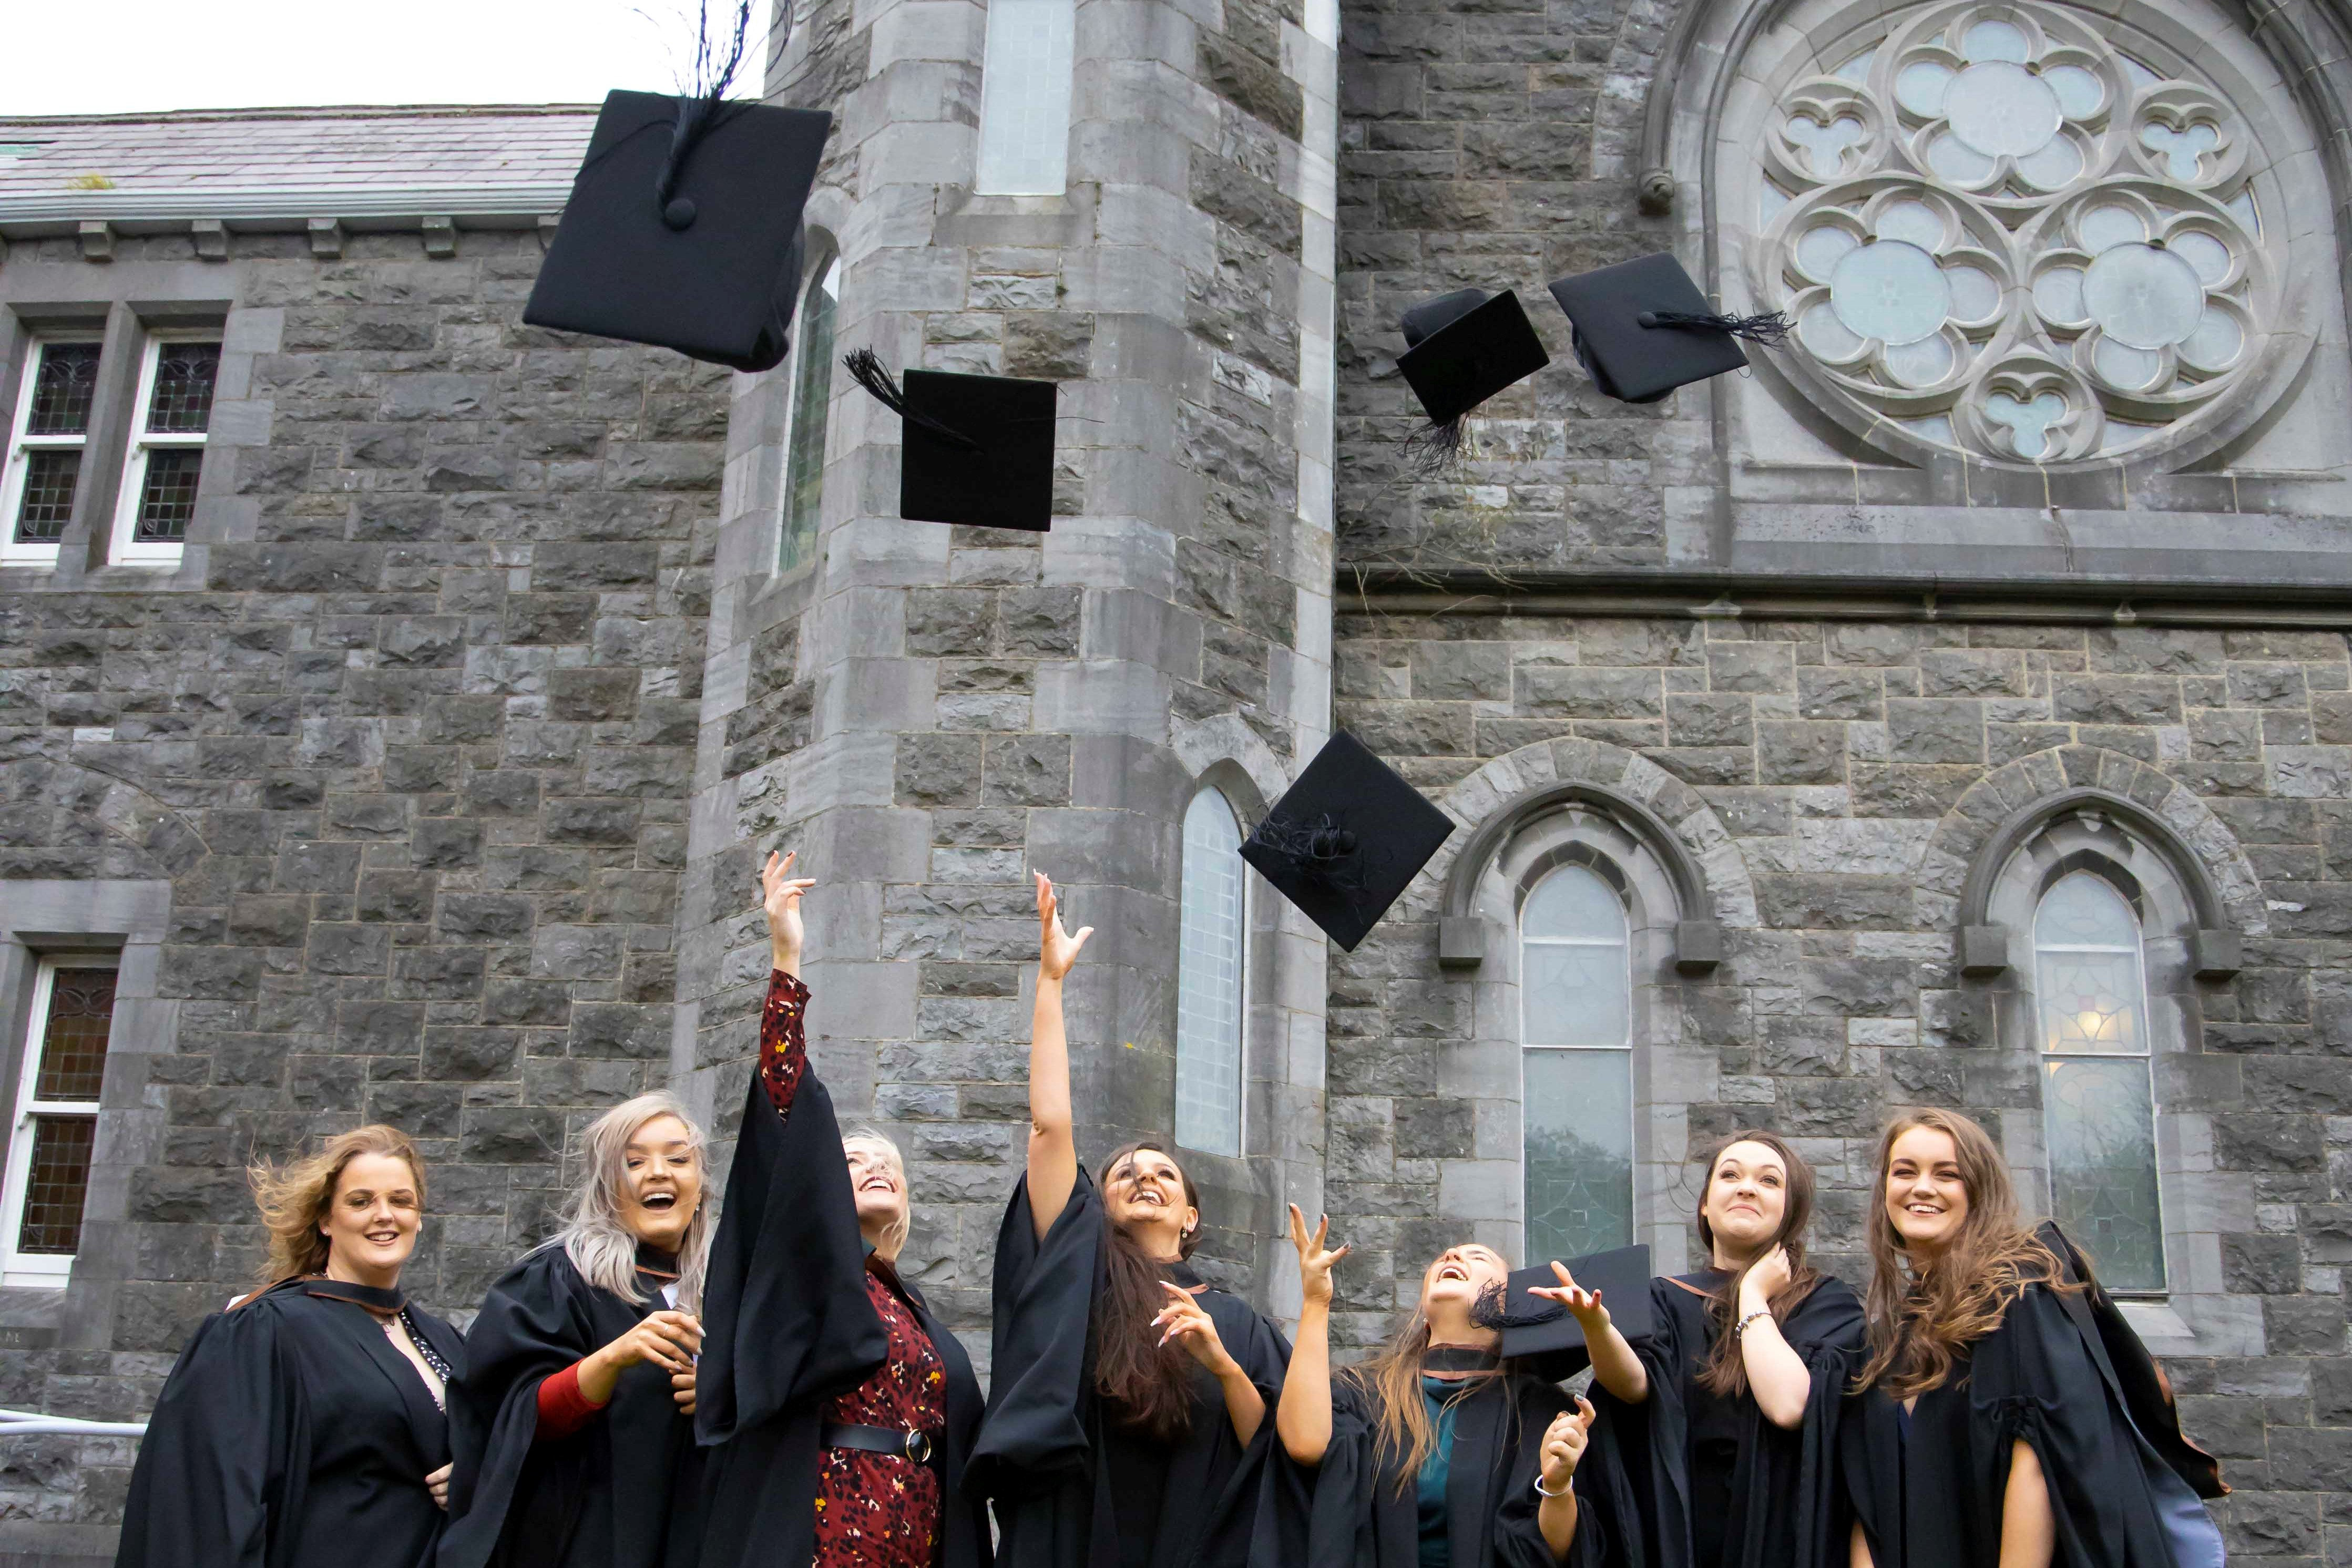 Waterford Institute of Technology (WIT) Conferring Ceremonies. Pictured are Rachel Rogers Waterford city Sarah Power Carrick on Suir, Hannah Brennan Waterford City, Chloe O'Keefe Waterford city, Aoife Whitty New Ross, Louise Honey Rosslare and Mia Doyle Gorey . Picture: Patrick Browne